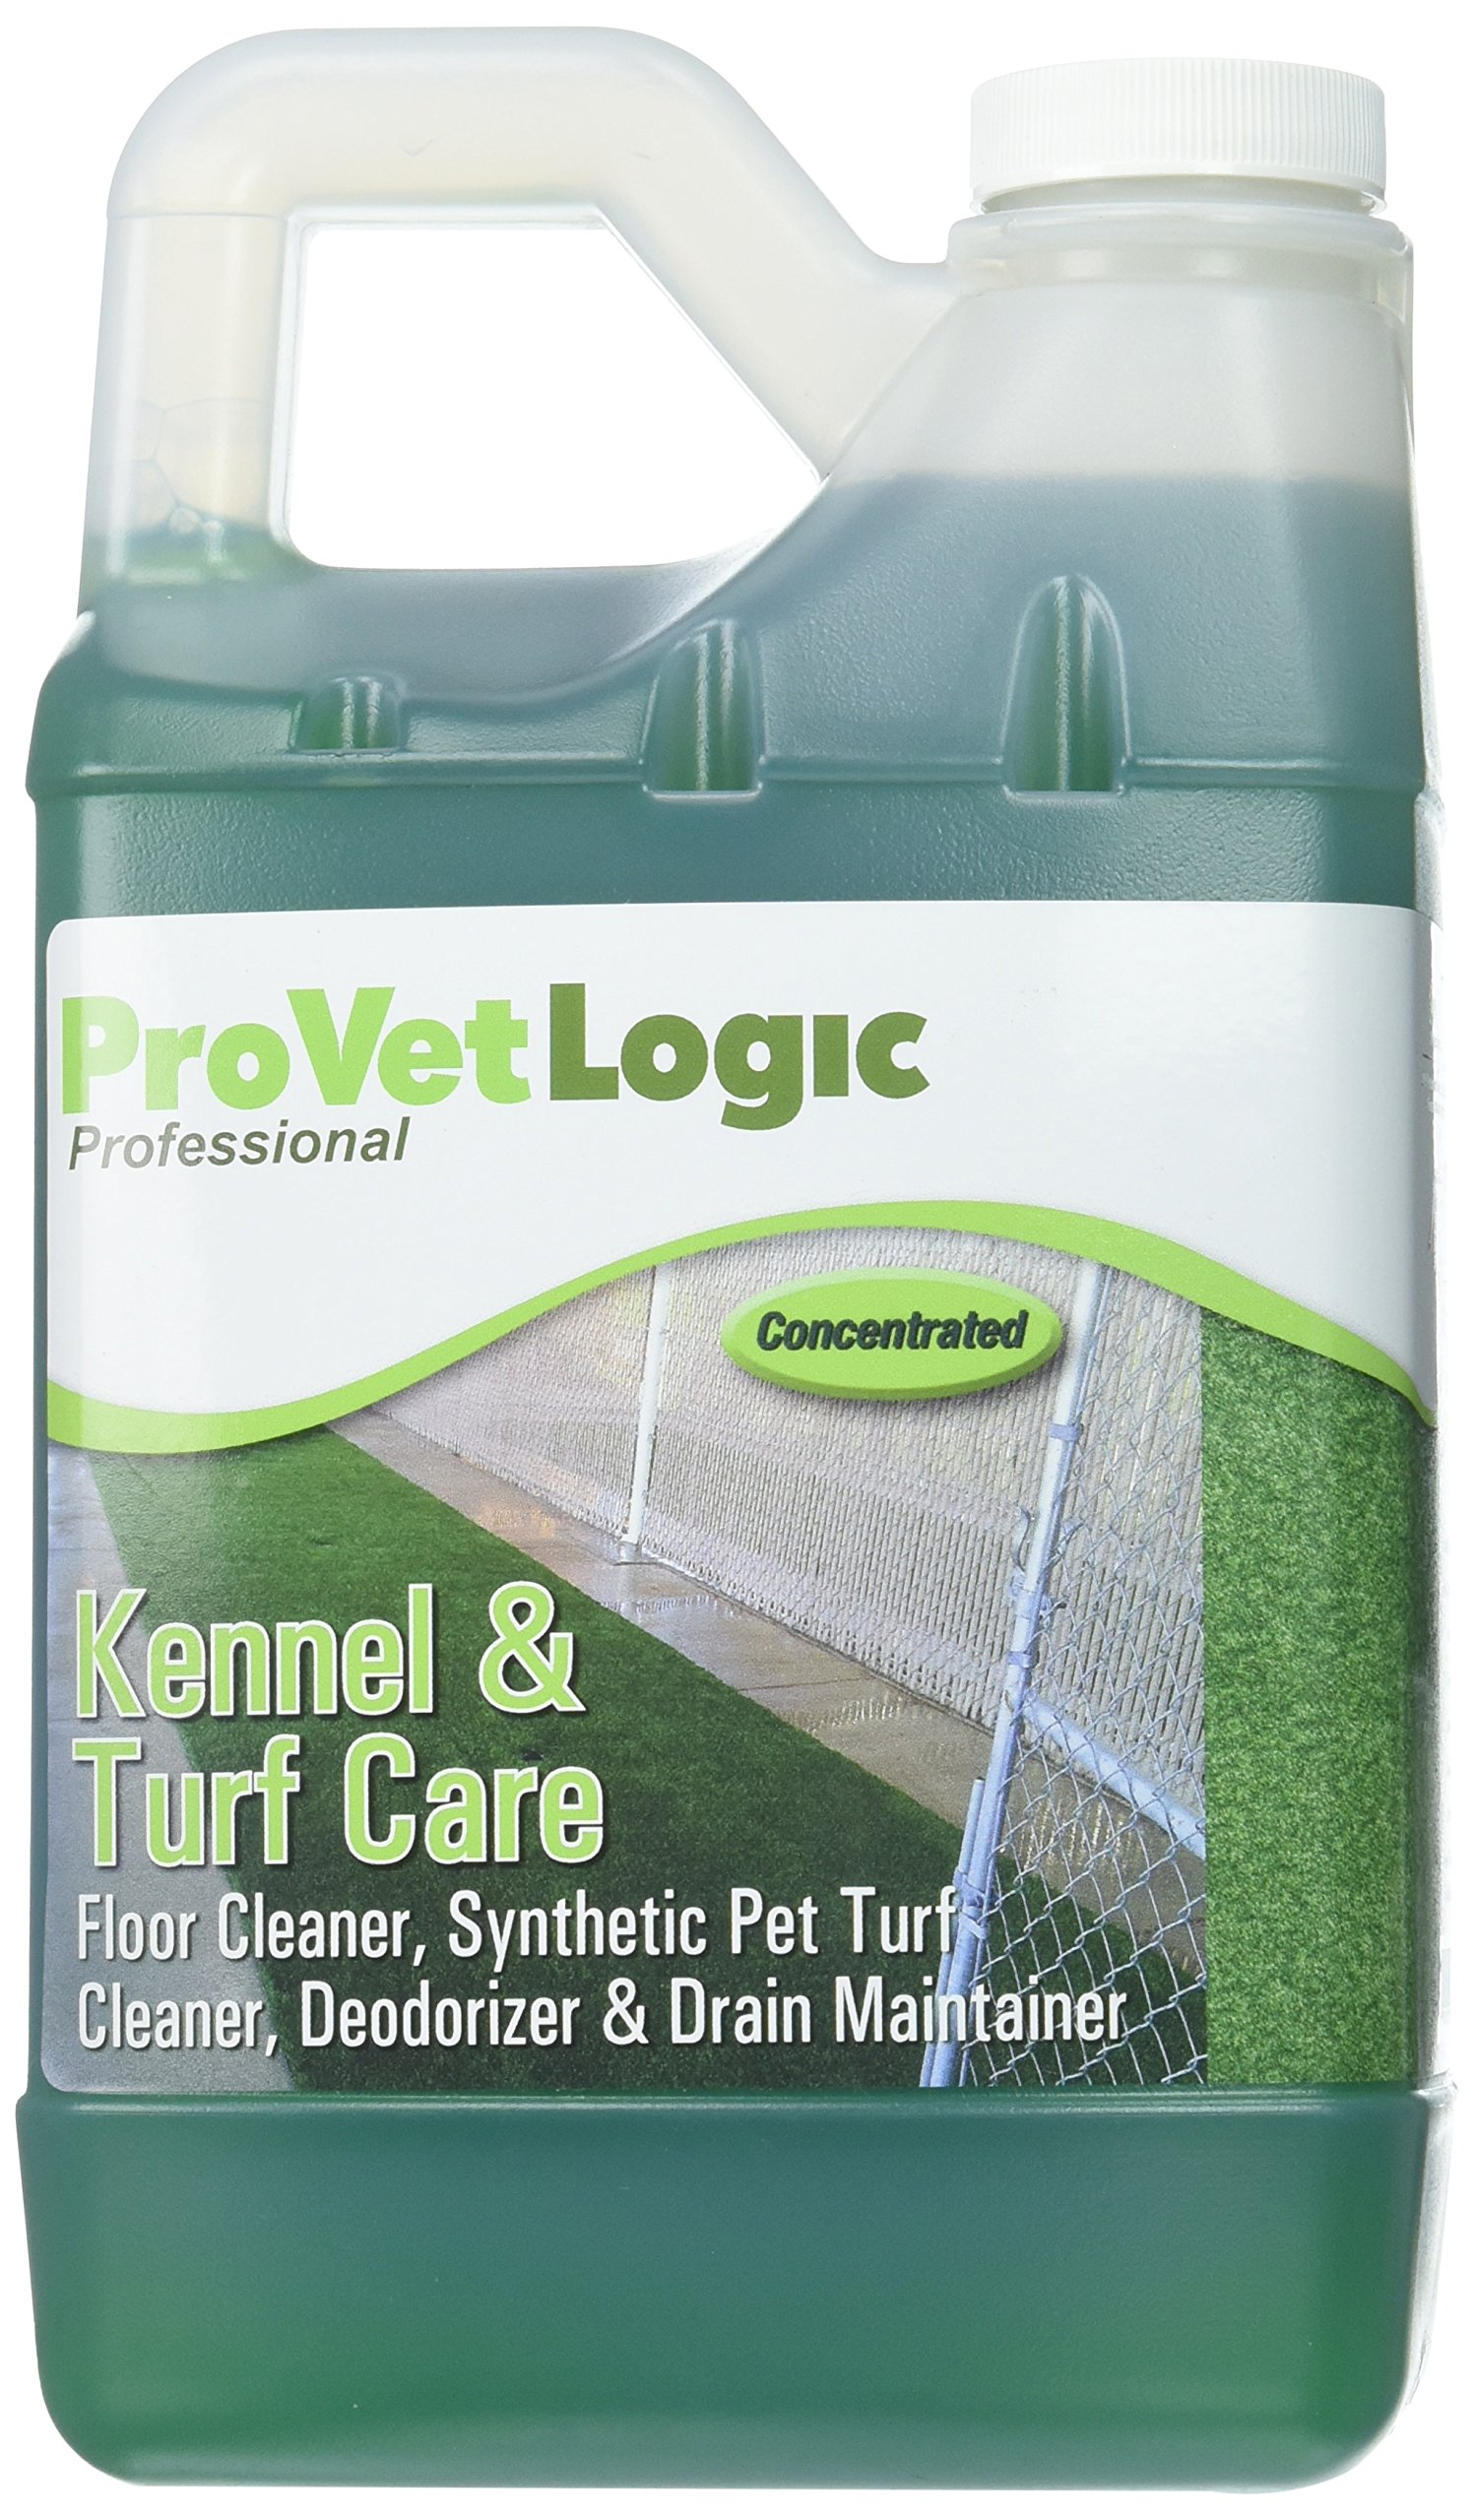 Amazon.com: ProVetLogic Kennel Care, Pet Floor Cleaner, Synthetic ...